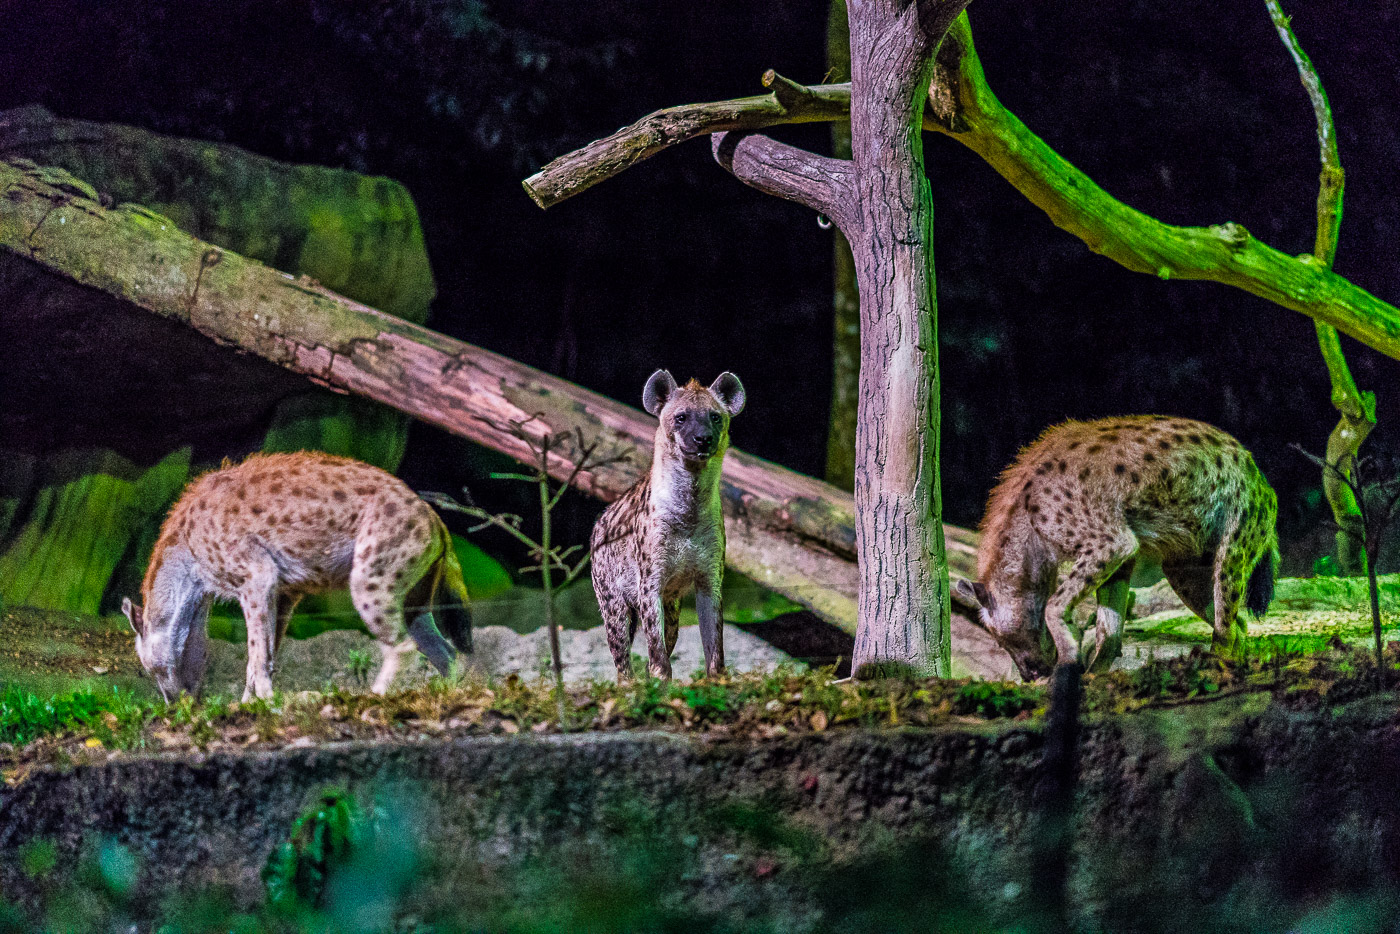 Hyenas getting fed at the night safari in singapore